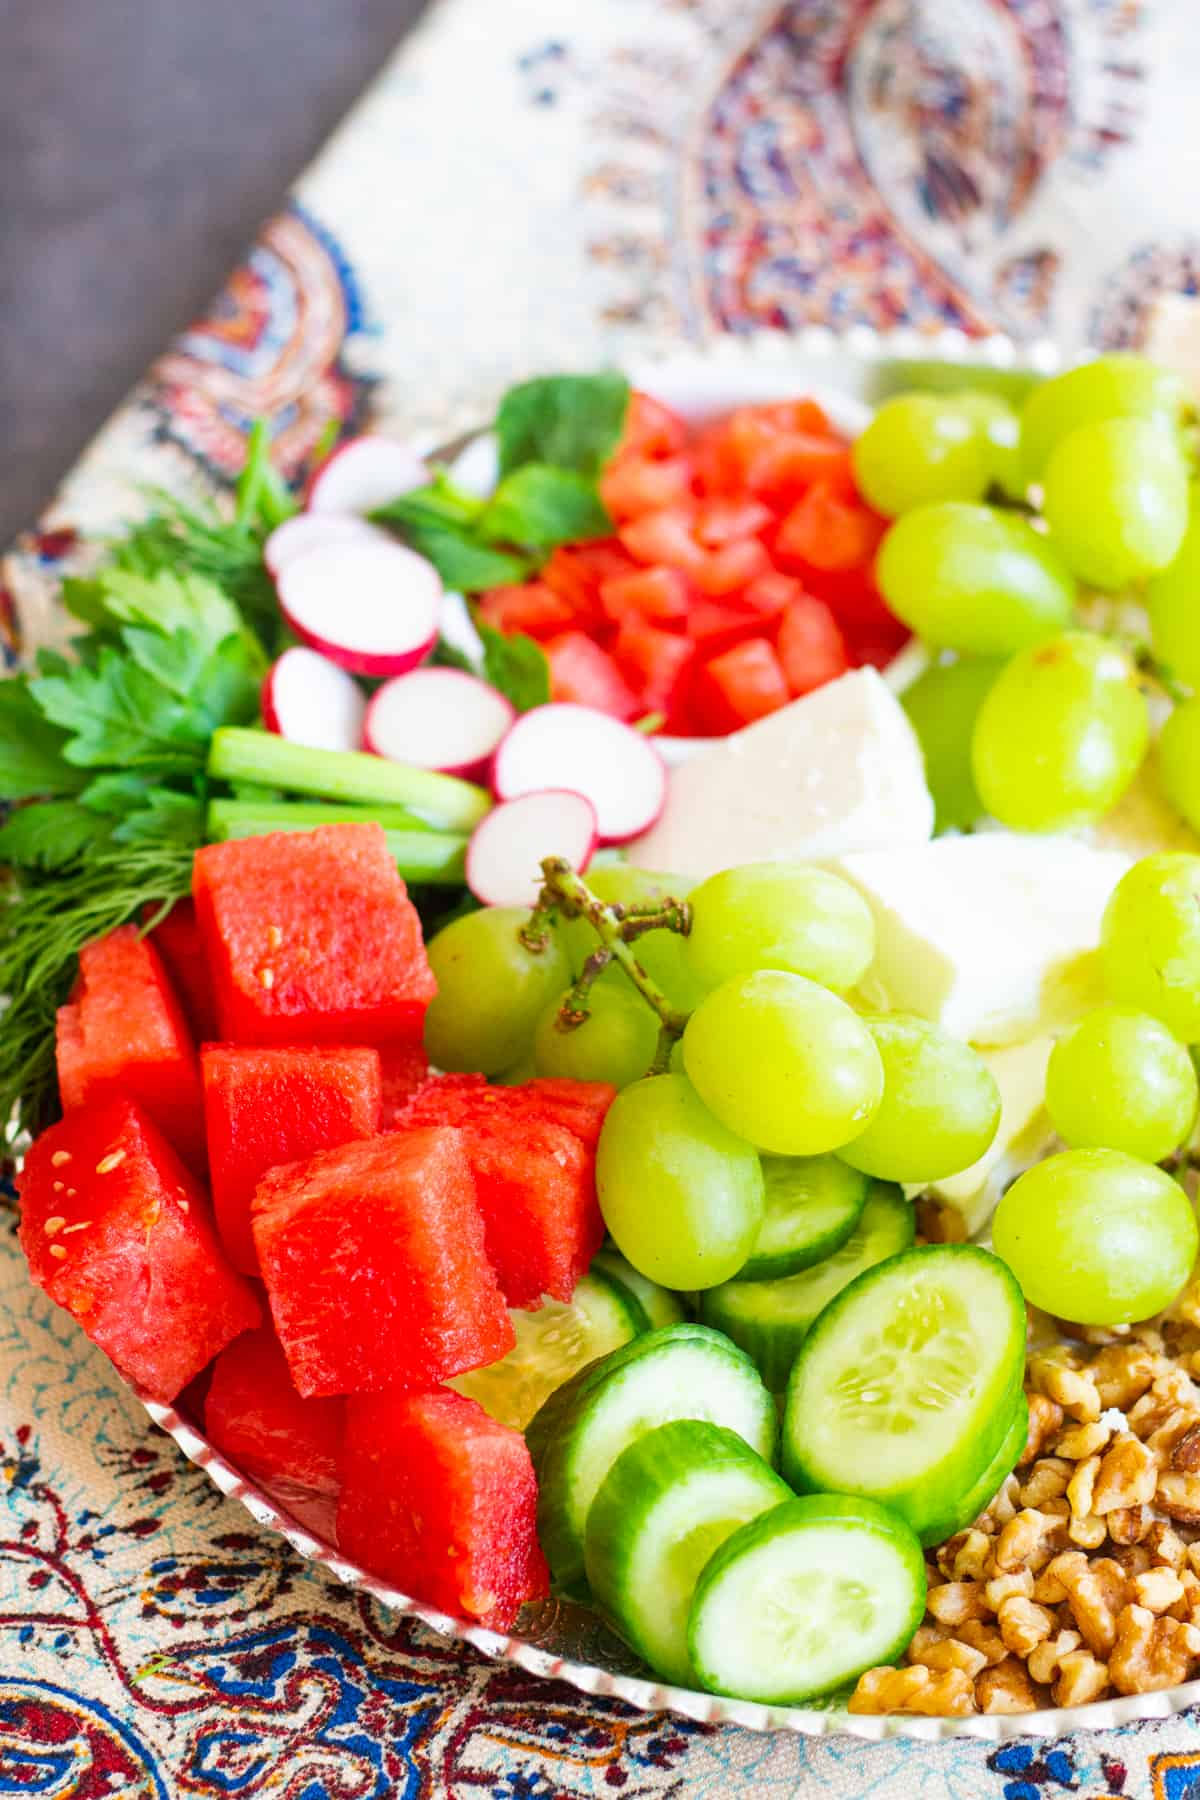 Watermelon is a great addition to the platter.